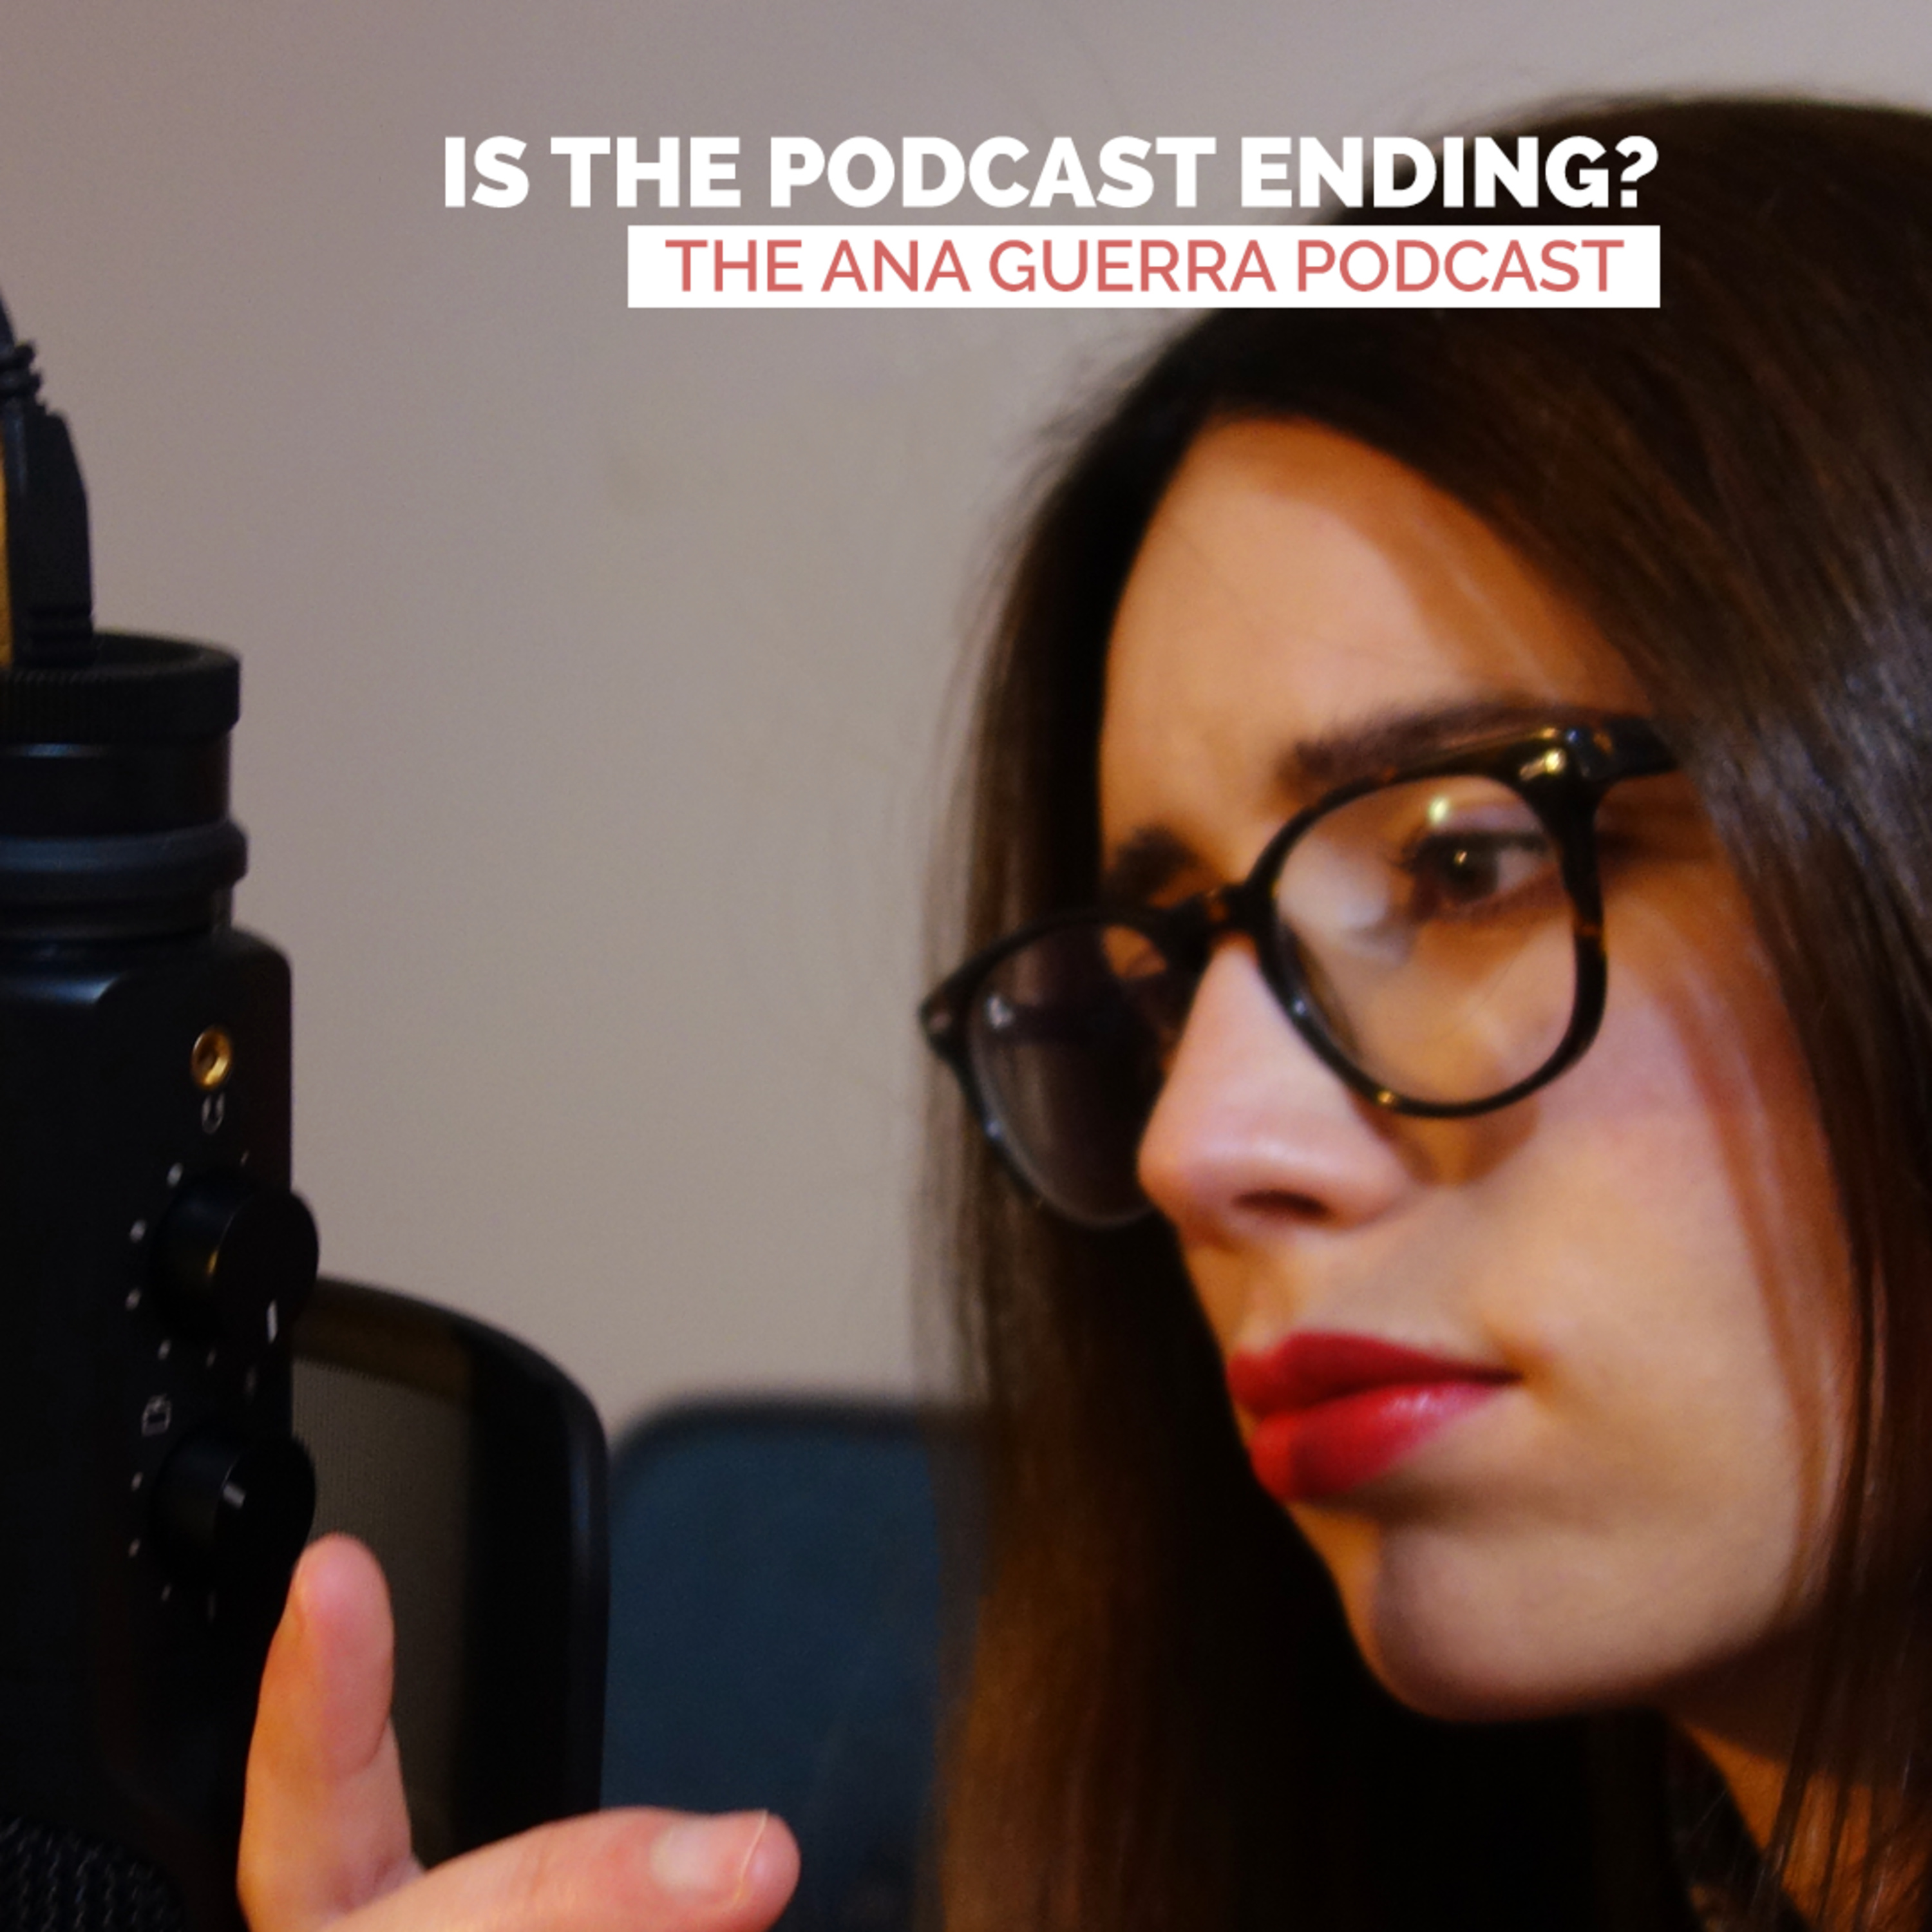 Is the Podcast ending? 😡